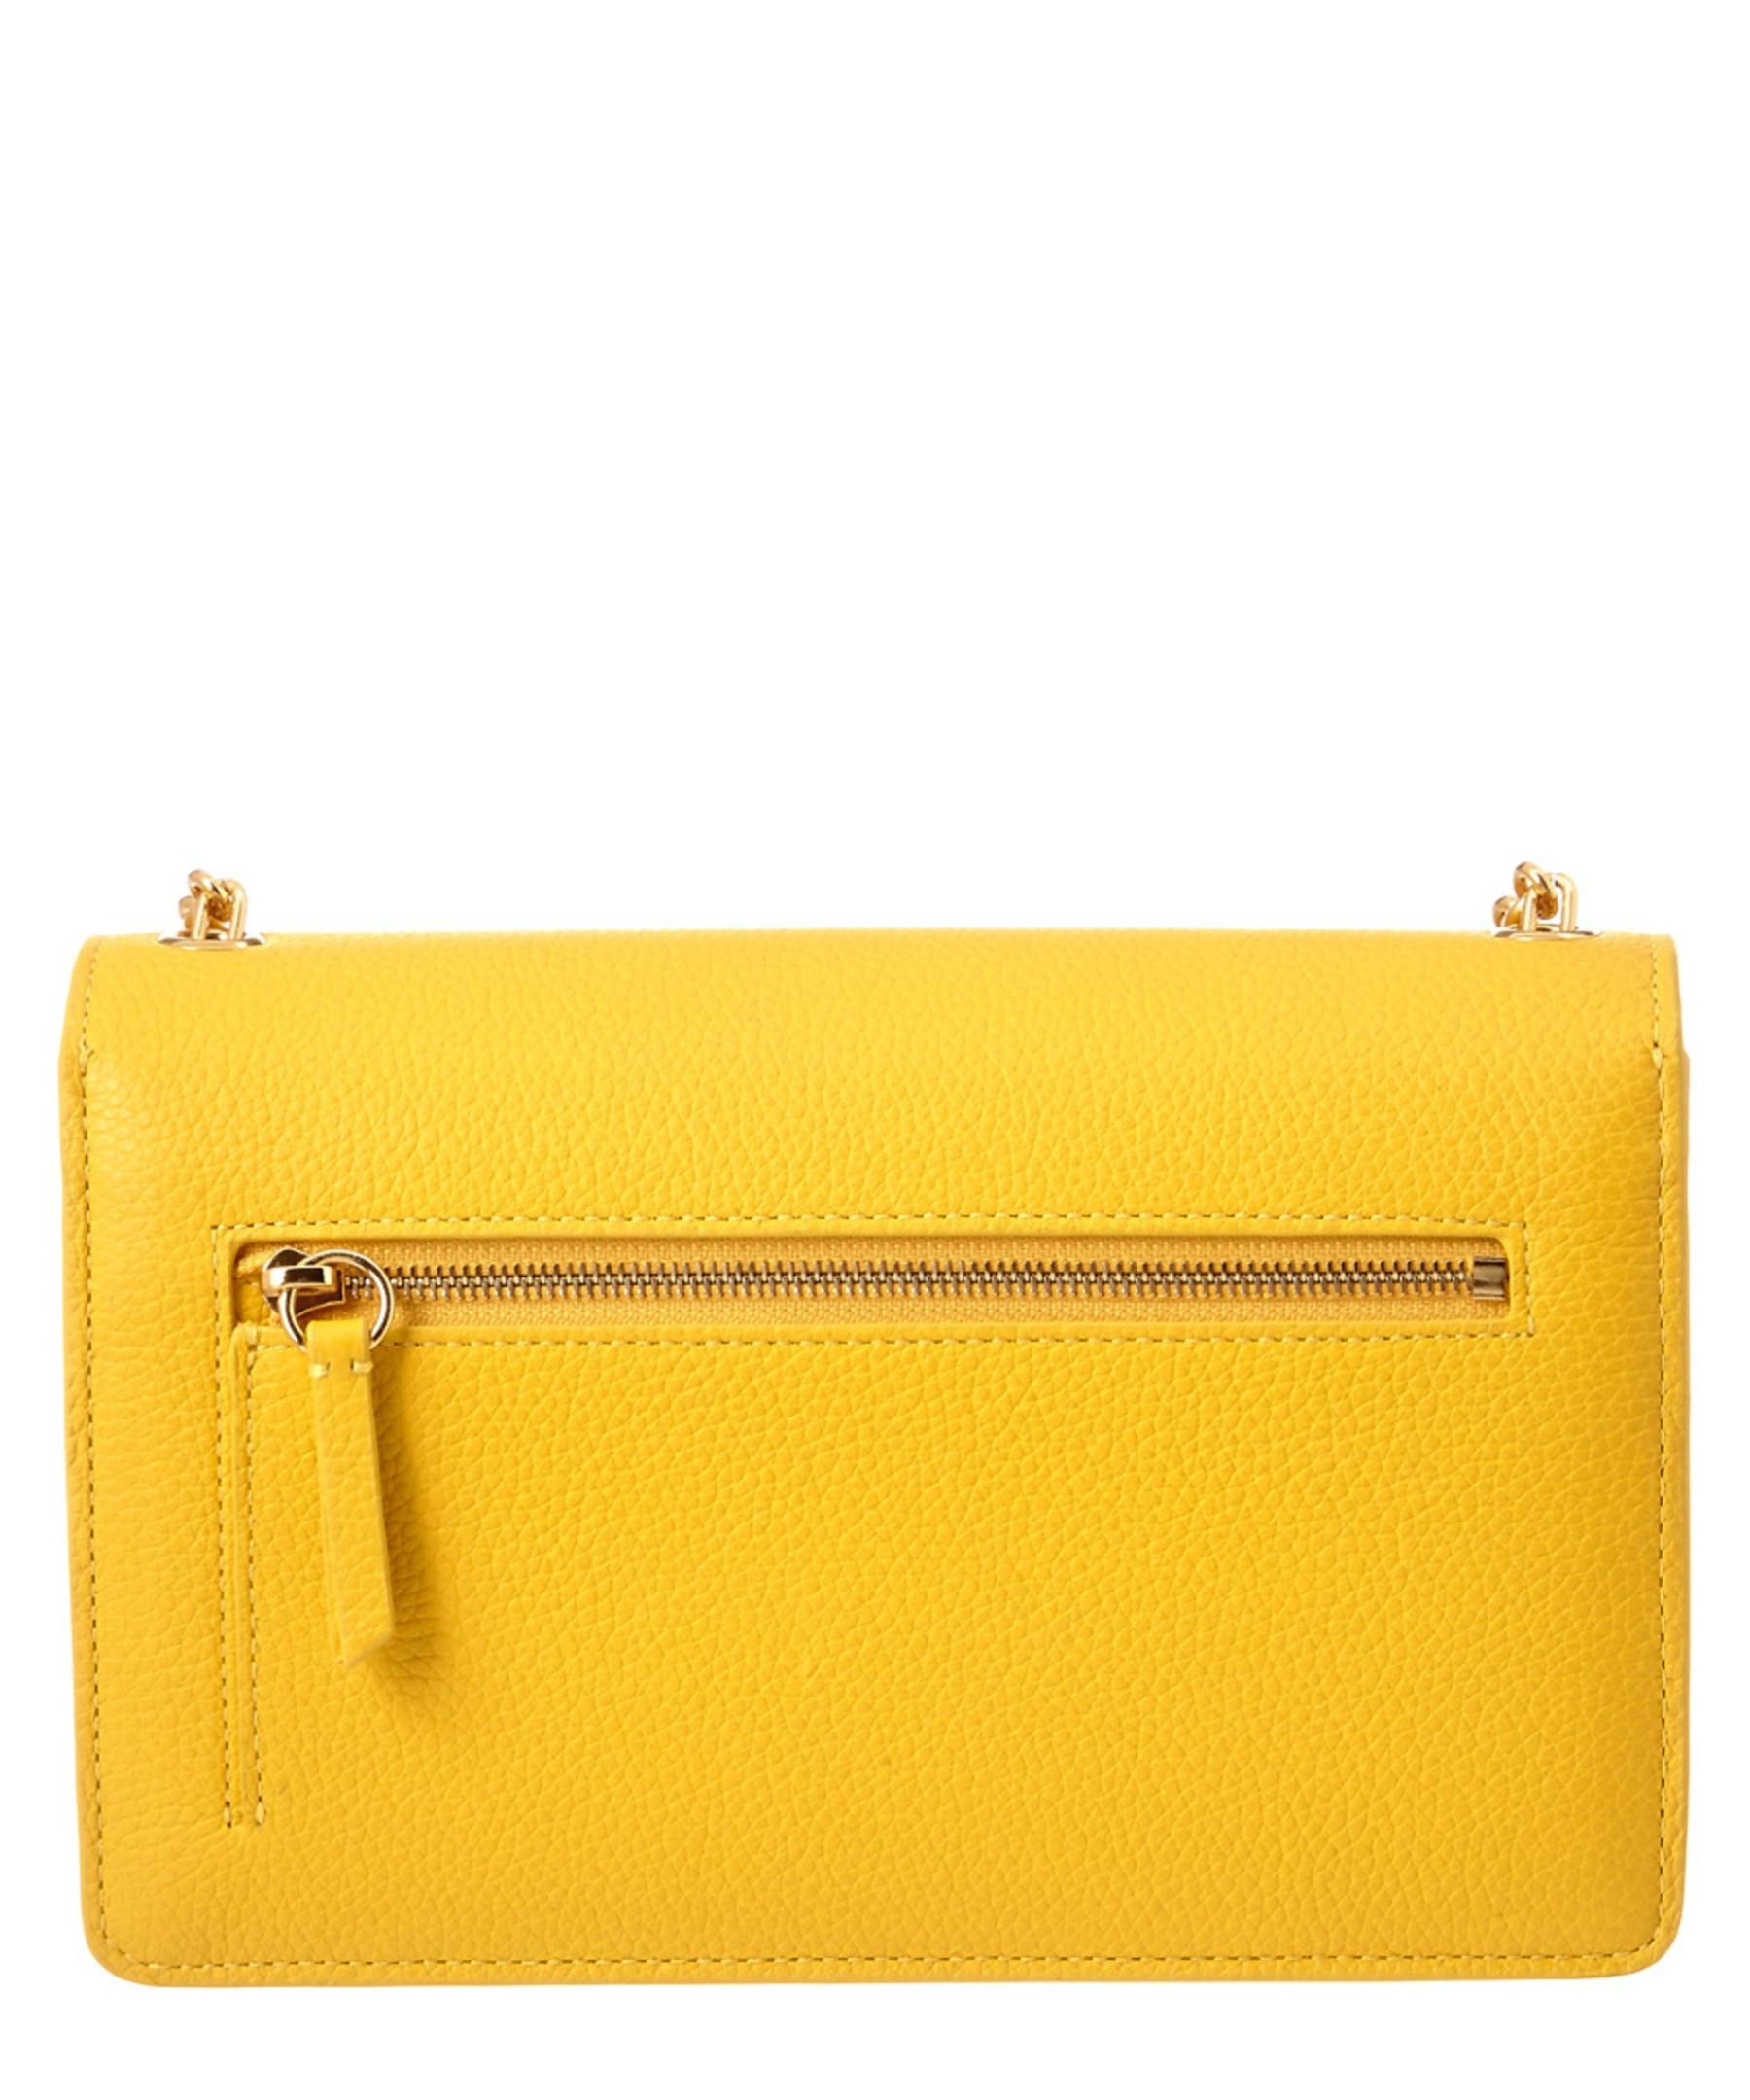 9c22db0497 ... cheap lyst mulberry darley small classic grain leather crossbody in  yellow 26986 eb1ea